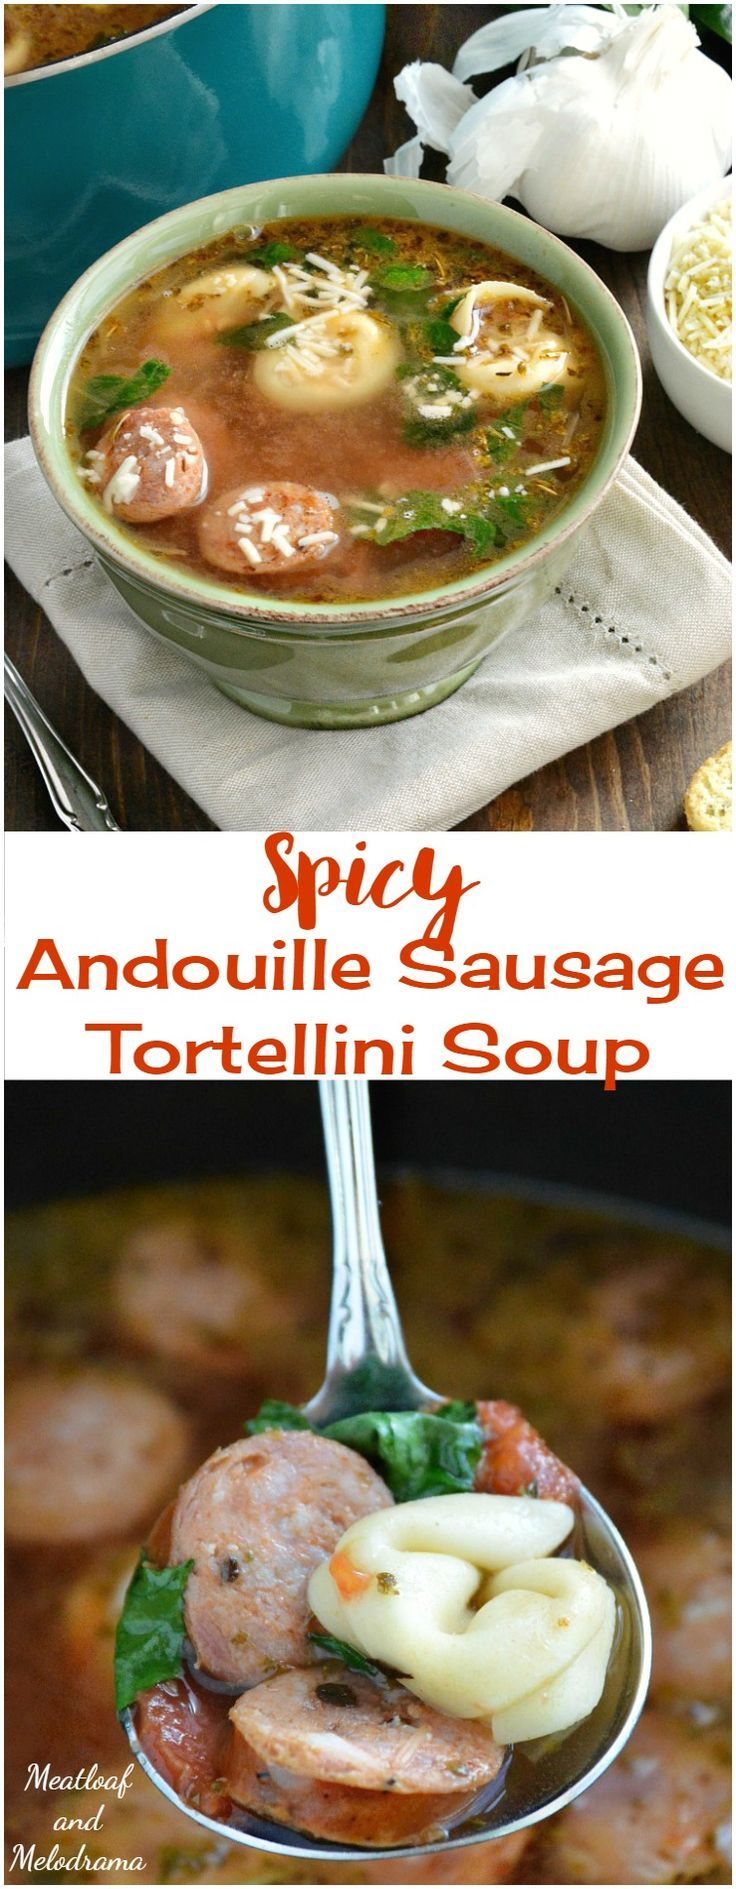 Spicy Andouille Sausage Tortellini Soup is a blend of Cajun and Italian flavors and can be ready in 30 minutes or made in the slow cooker ( Crock-Pot ). Perfect comfort food for chilly days!